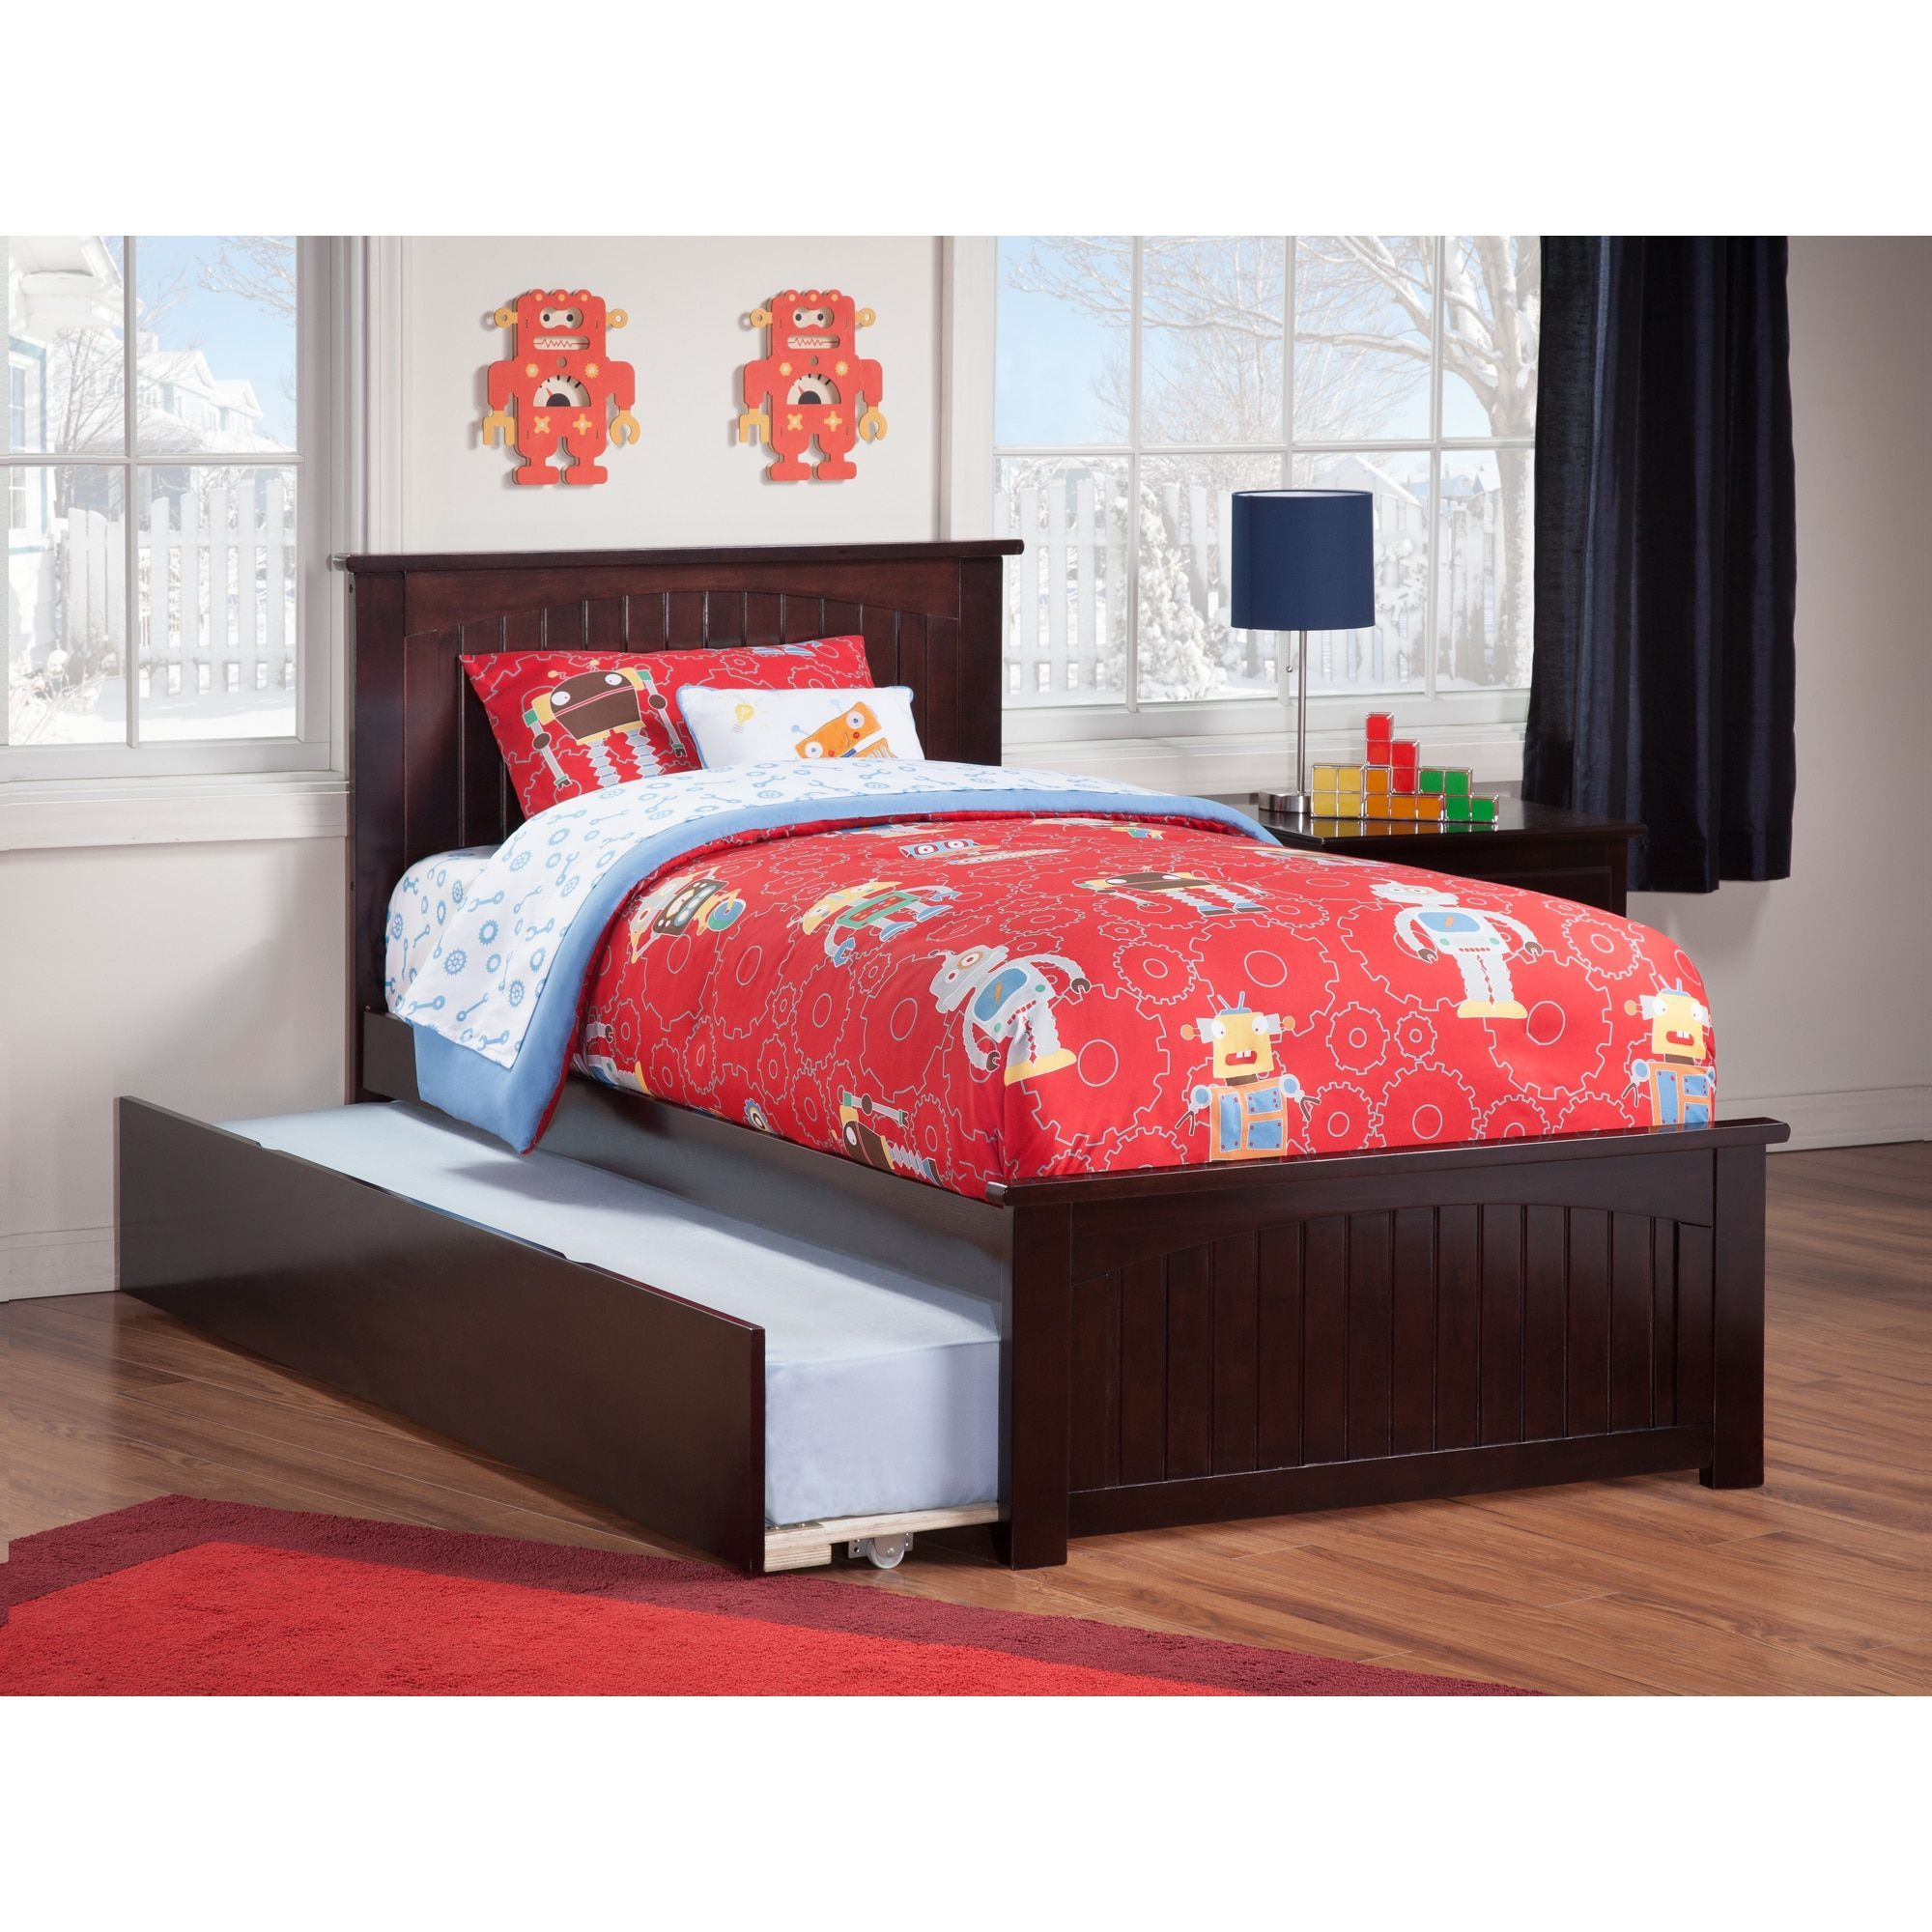 Nantucket Twin Platform Bed with Matching Foot Board with